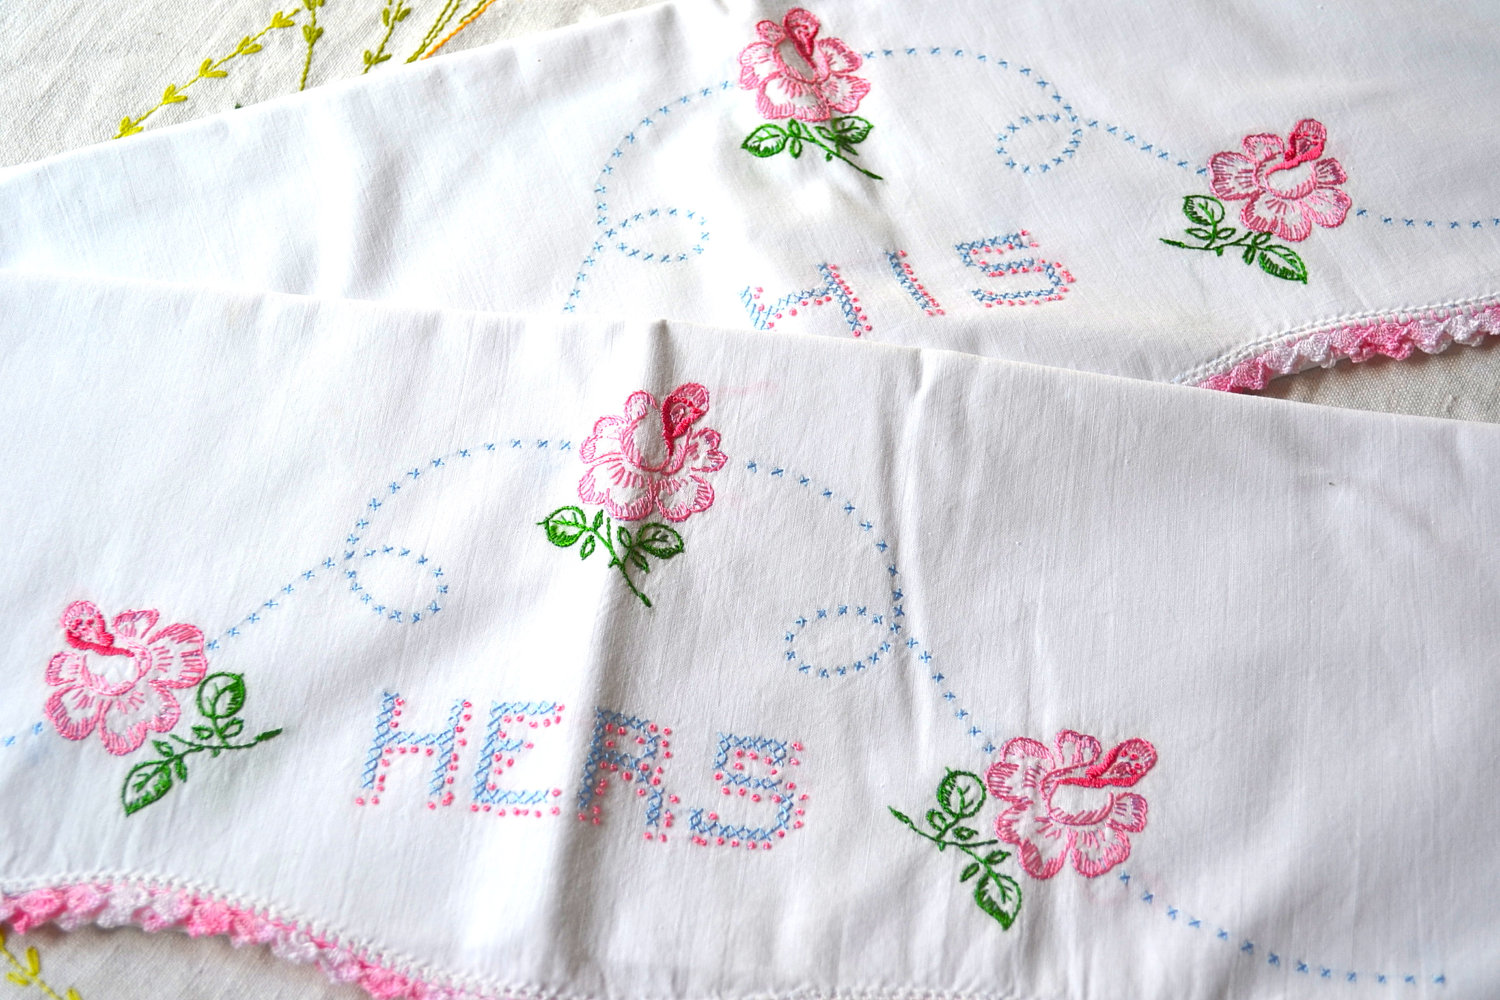 Wedding Gift Ideas Embroidered : His and Hers Embroidered Hankies wedding gift ideas OneWed.com